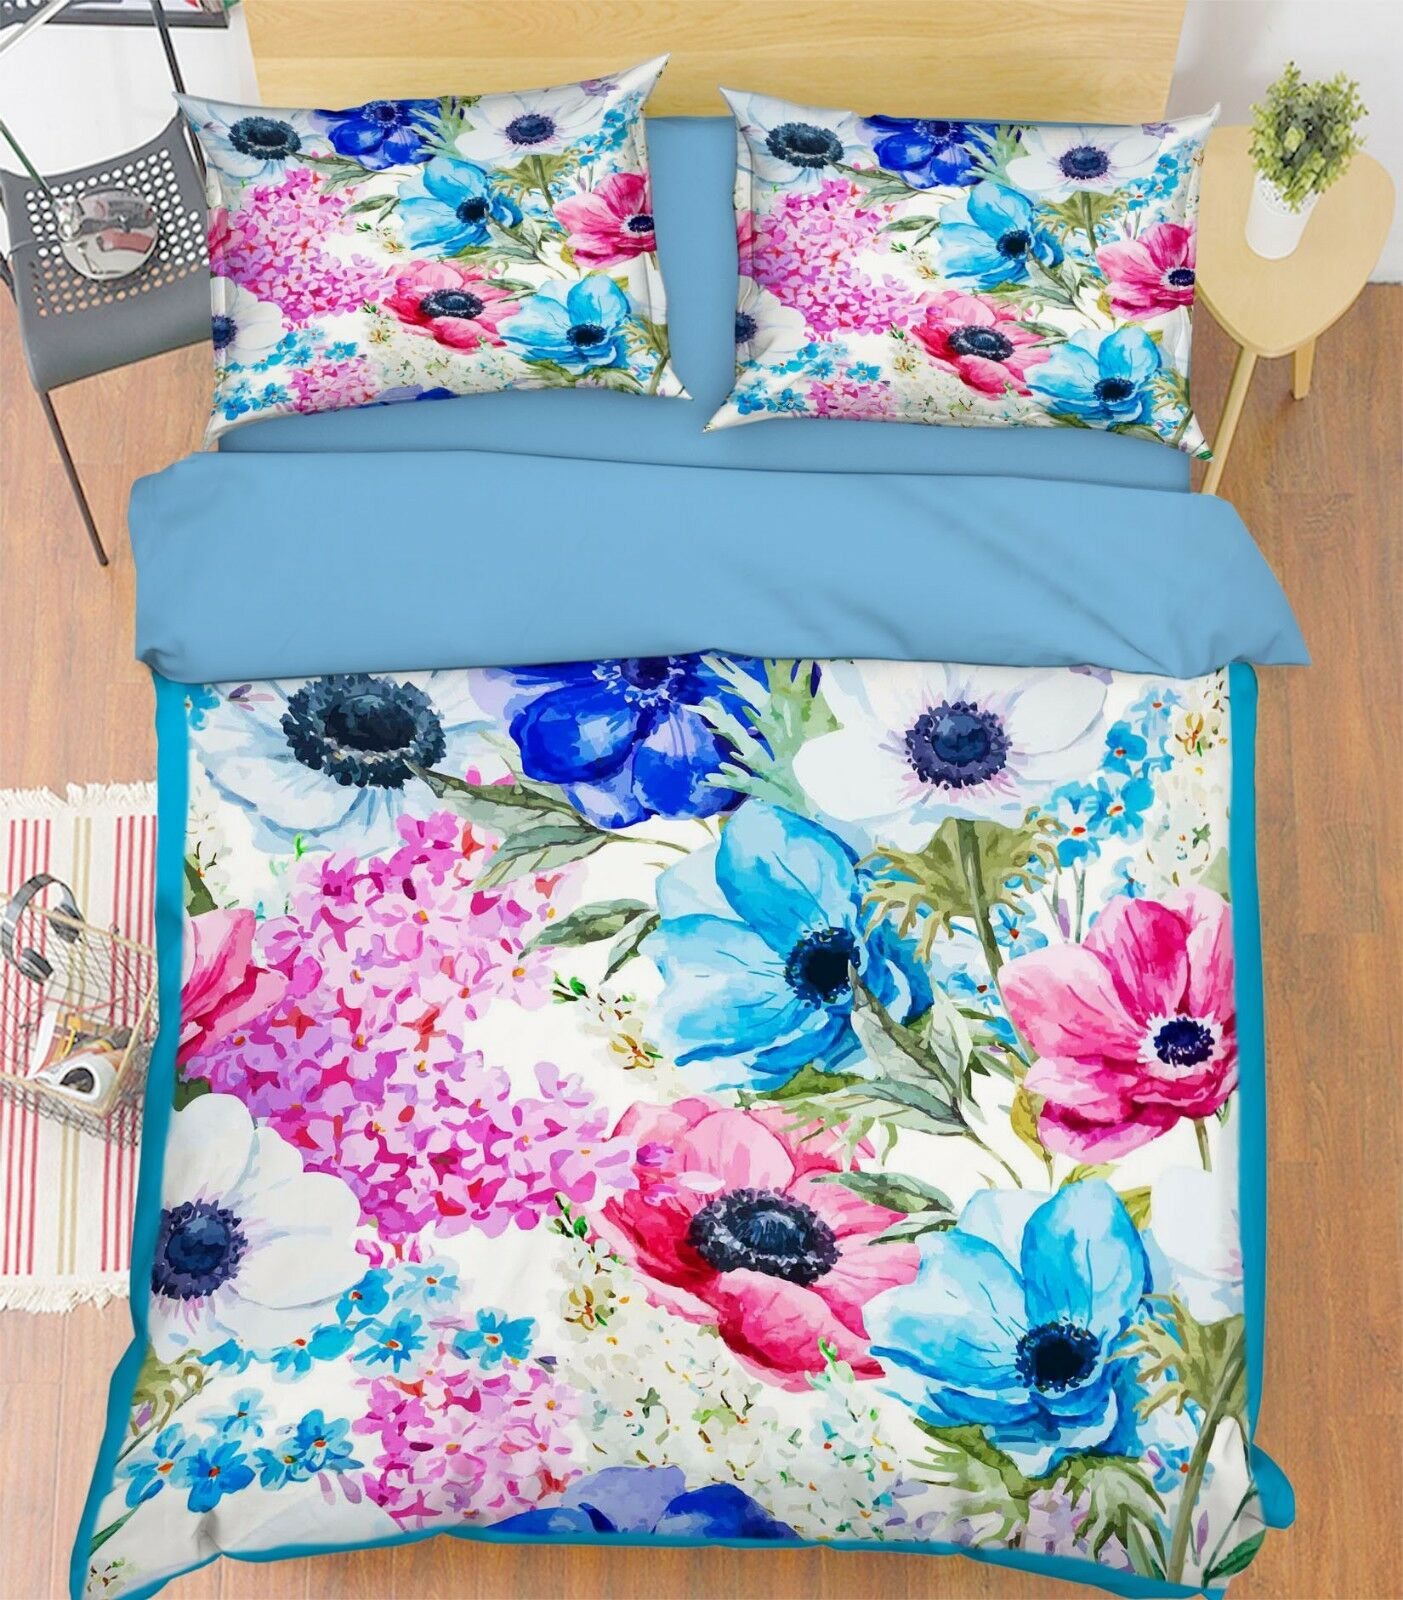 3D Paint Flowers 267 Bed Pillowcases Quilt Duvet Cover Set Single King UK Summer